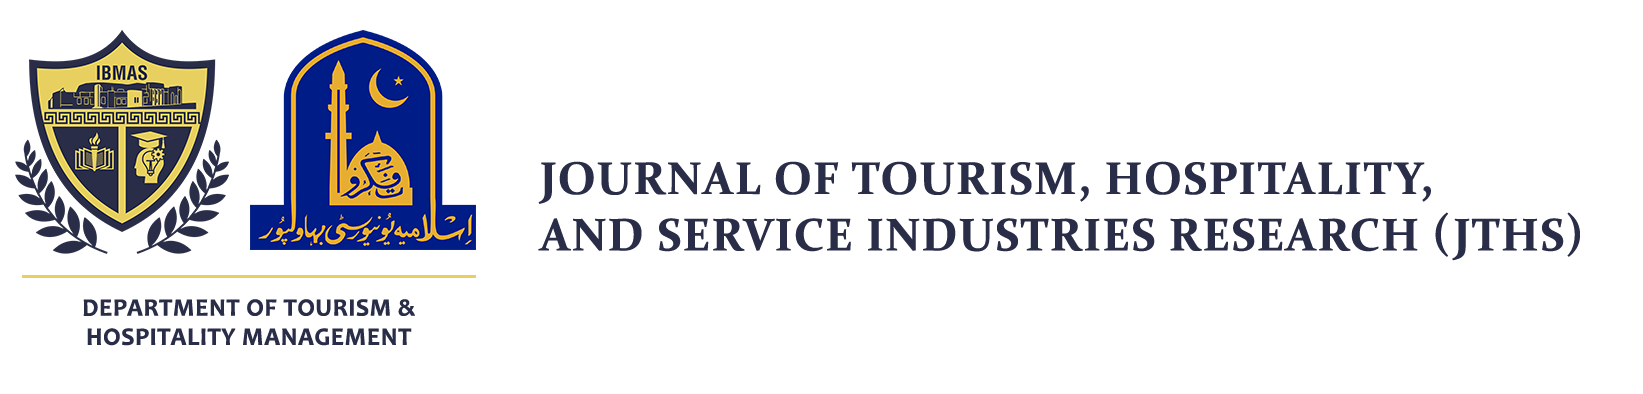 Journal of Tourism, Hospitality, and Service Industries Research (JTHS)